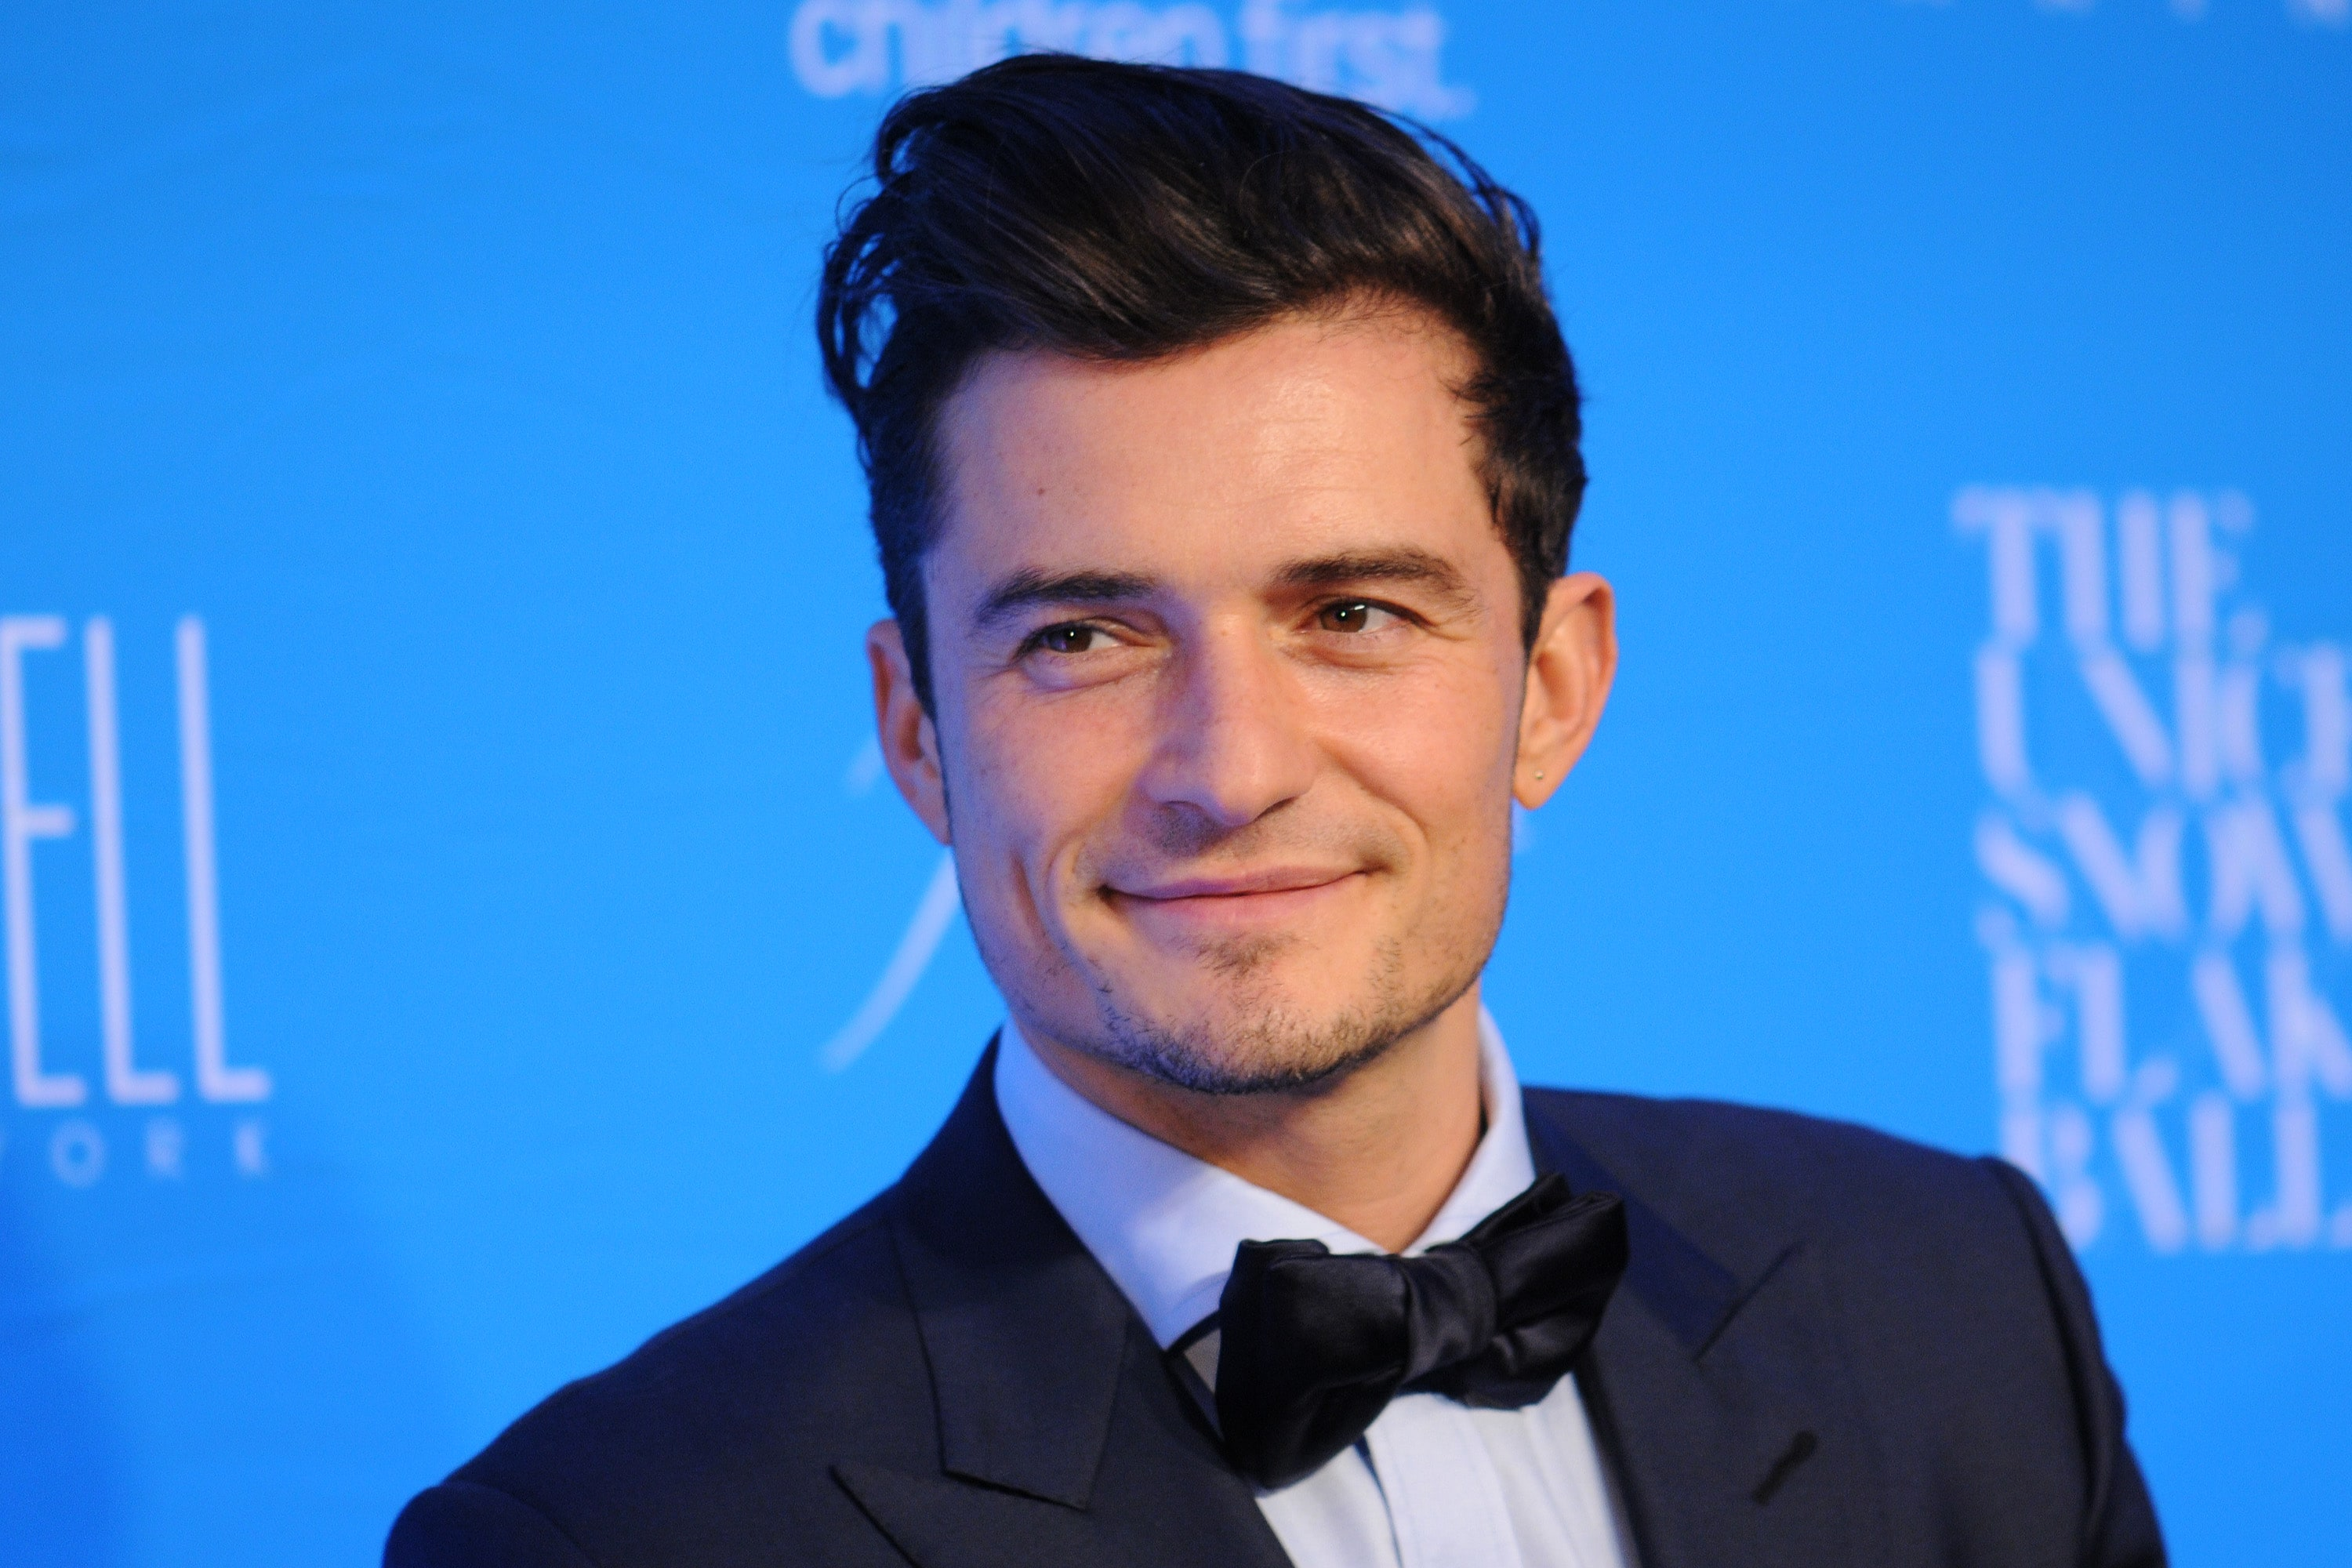 Orlando Bloom Cheating On Katy Perry With Selena Gomez The